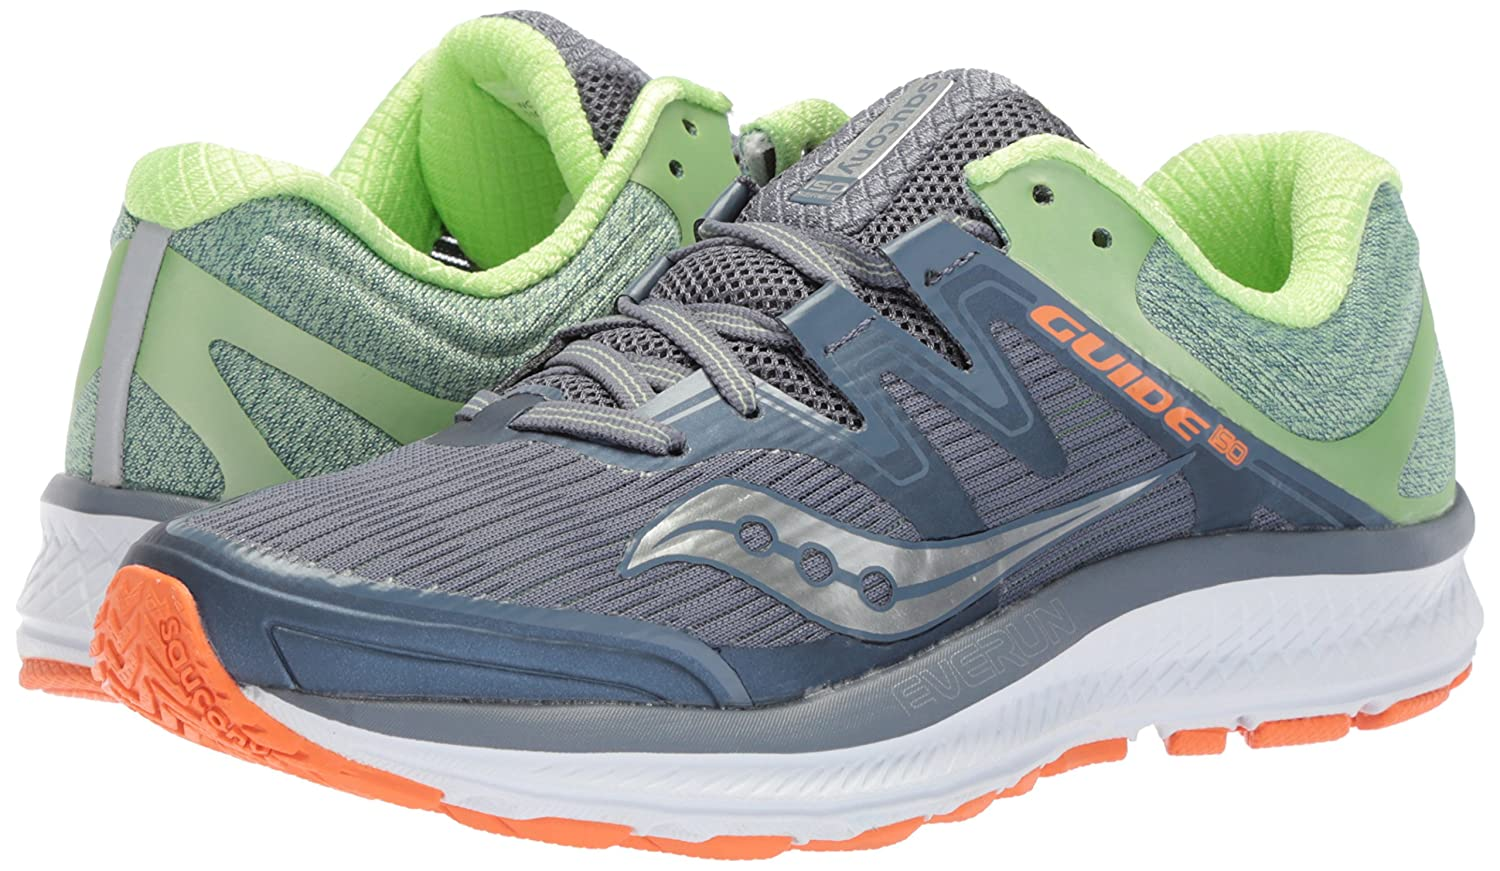 Saucony Women's Guide Iso Running Shoe B071JP34RX 9.5 B(M) US|Grey/Mint